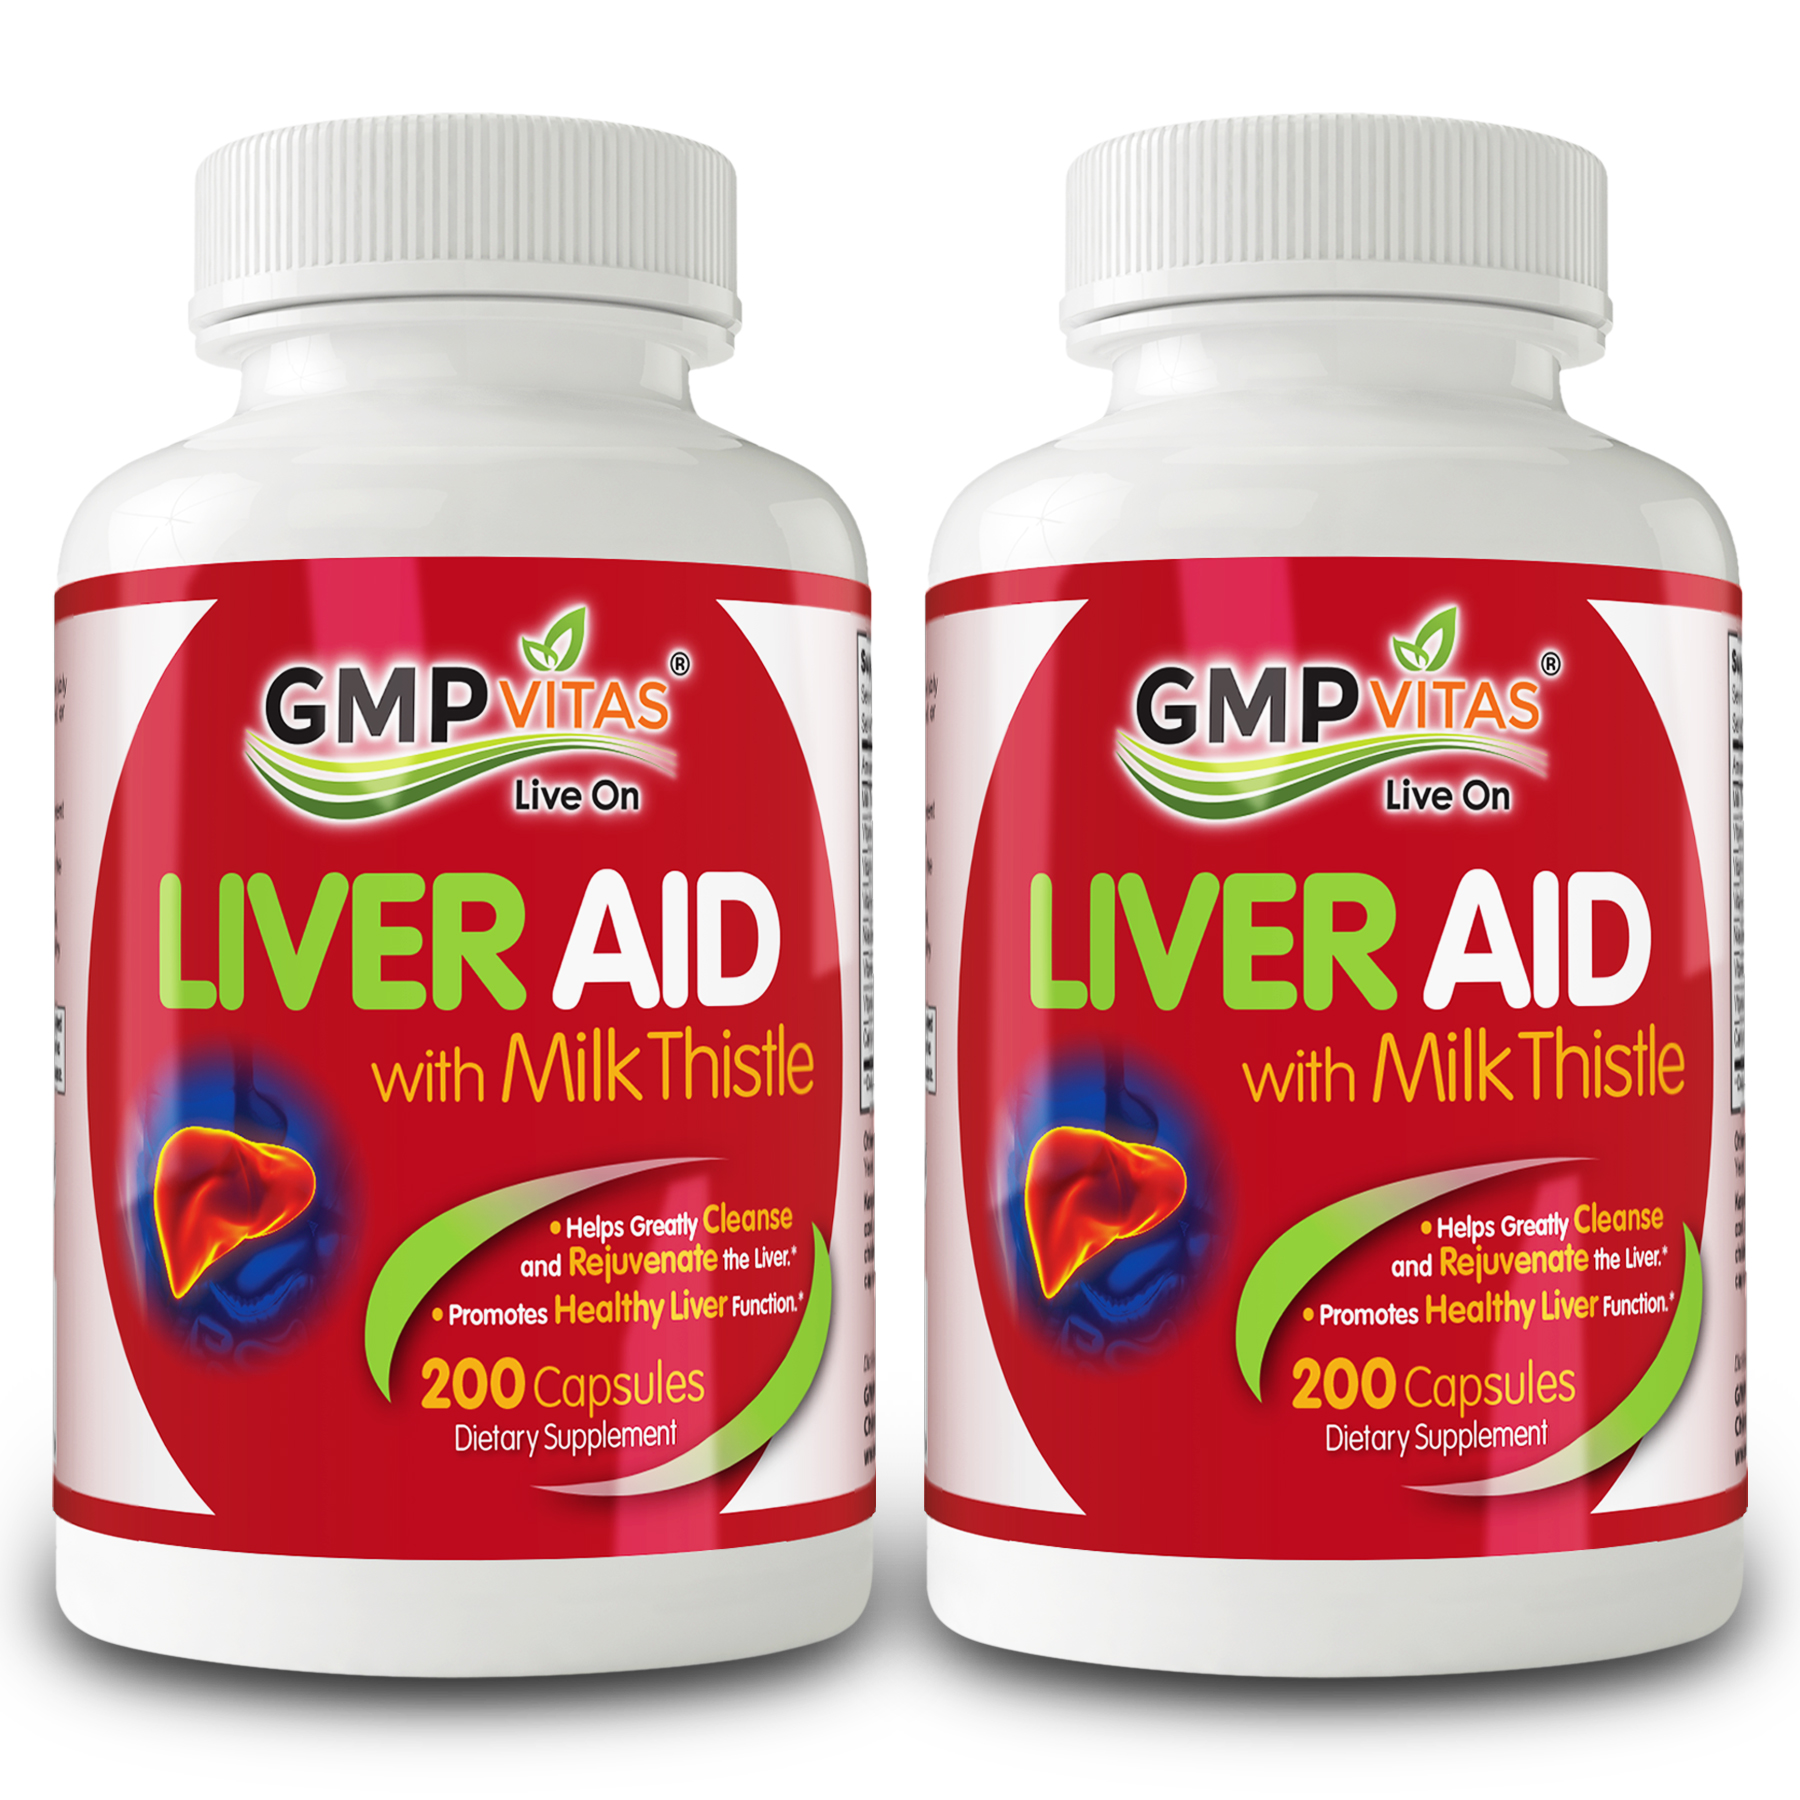 GMP Vitas® Liver Aid With Milk Thistle 200 Capsules Bundle (2 Bottles)